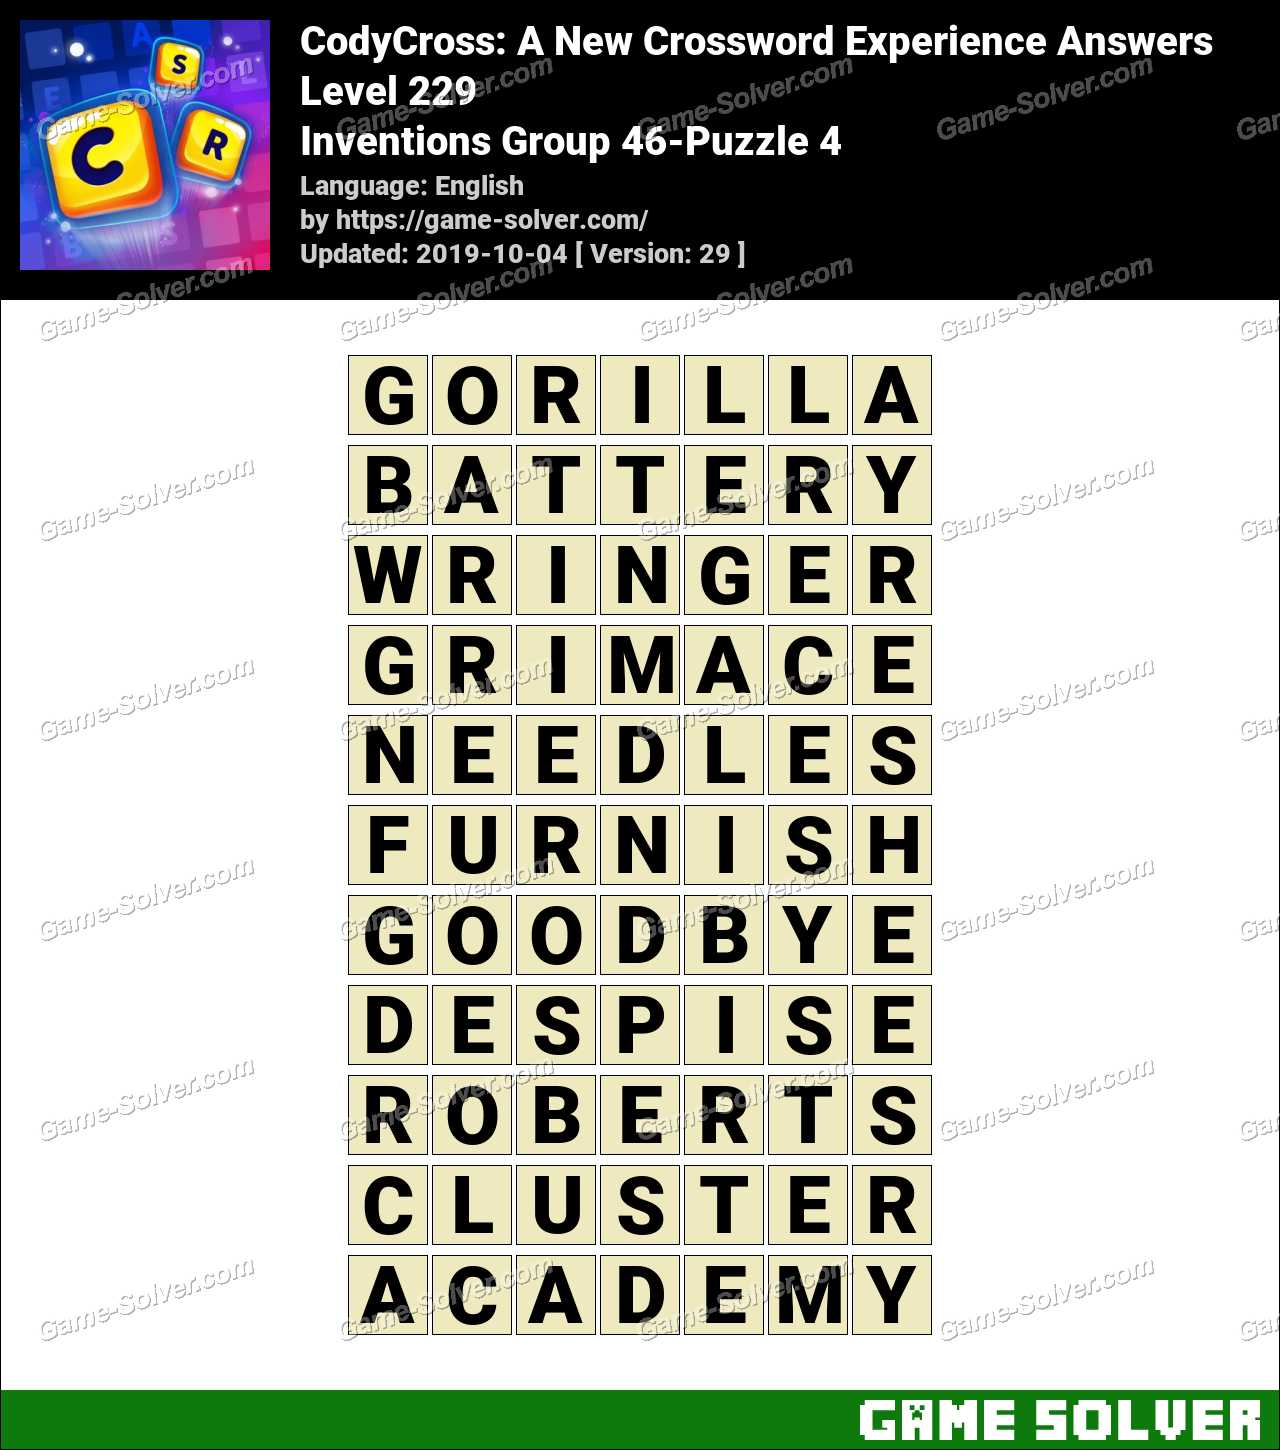 CodyCross Inventions Group 46-Puzzle 4 Answers